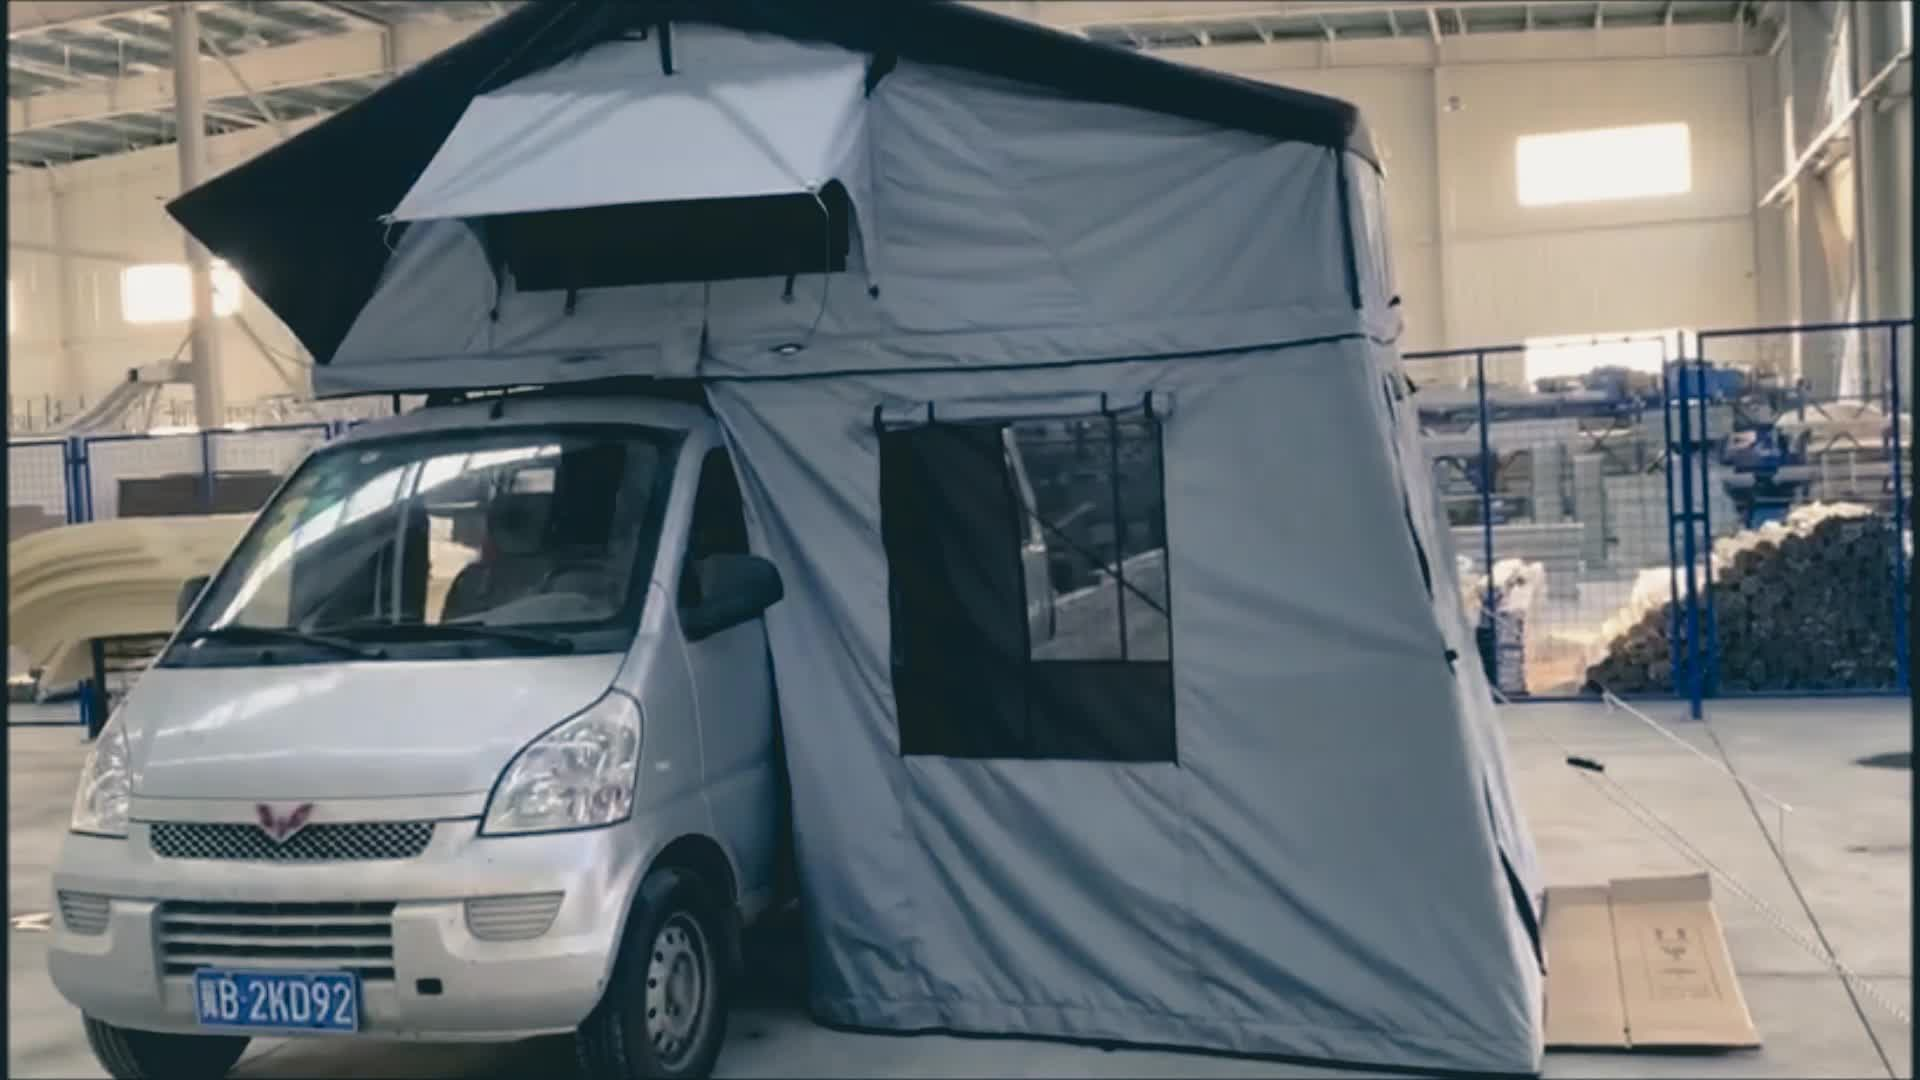 4WD Offroad Car Camping Roof Top Tent from roof tent factory